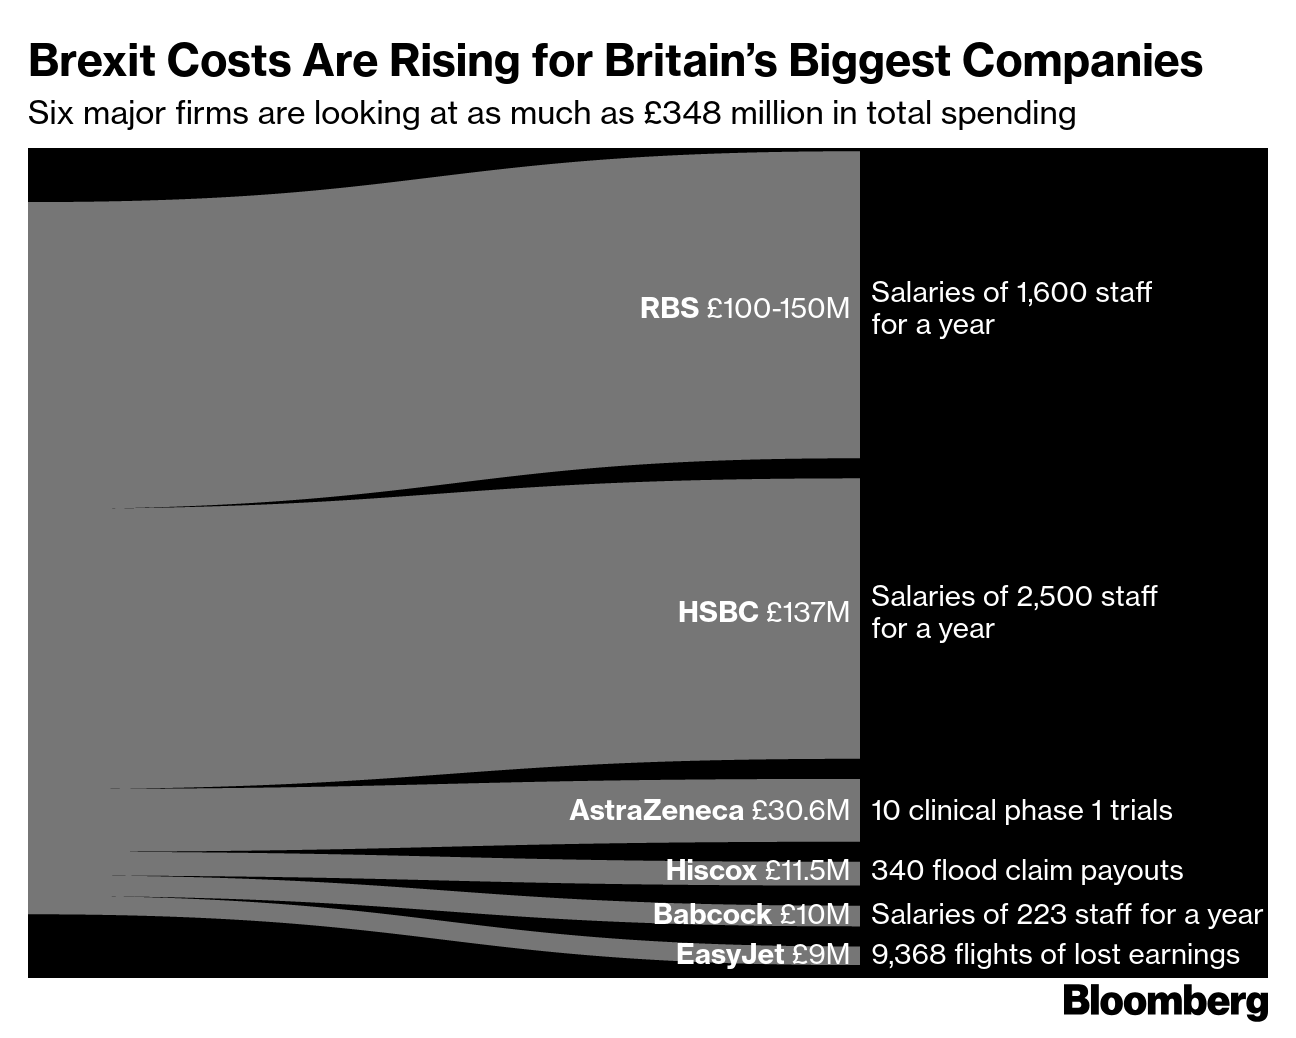 What Brexit Will Cost Some of Britain's Leading Companies - Bloomberg